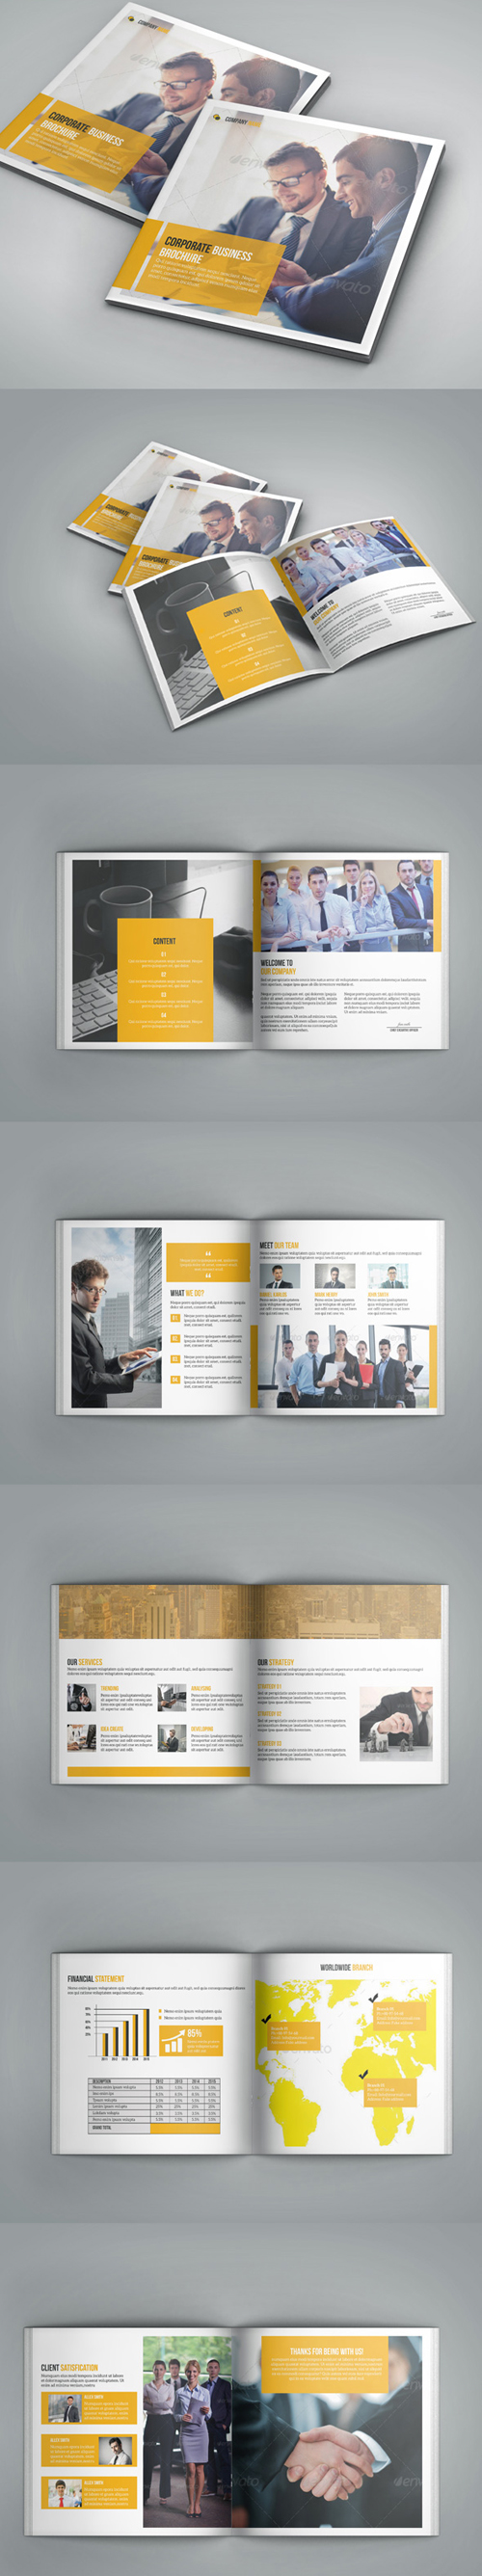 Square Bi-Fold Business Brochure Template